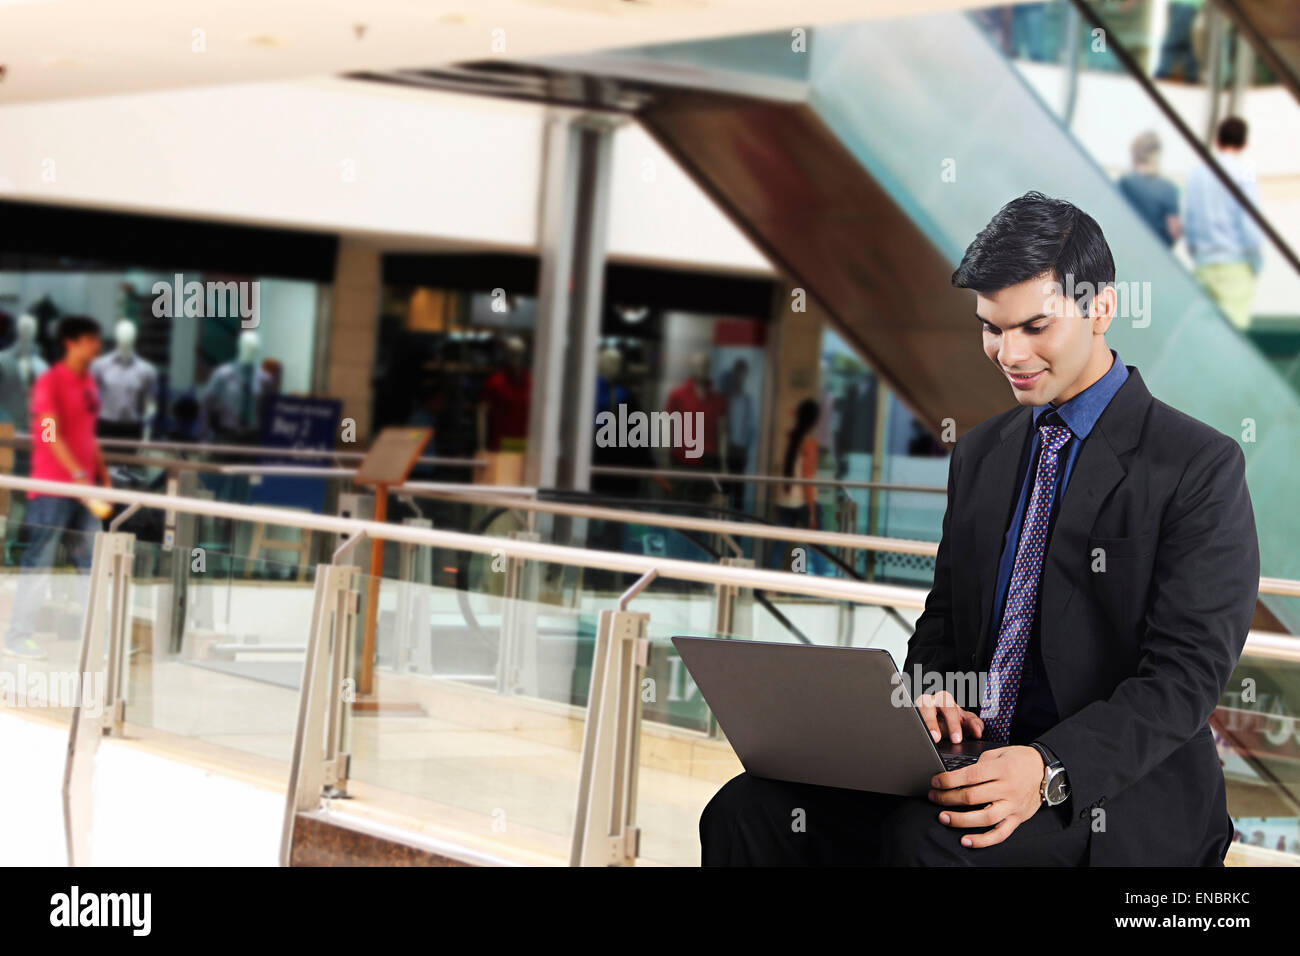 1 indian Business Man Mall laptop shopping - Stock Image